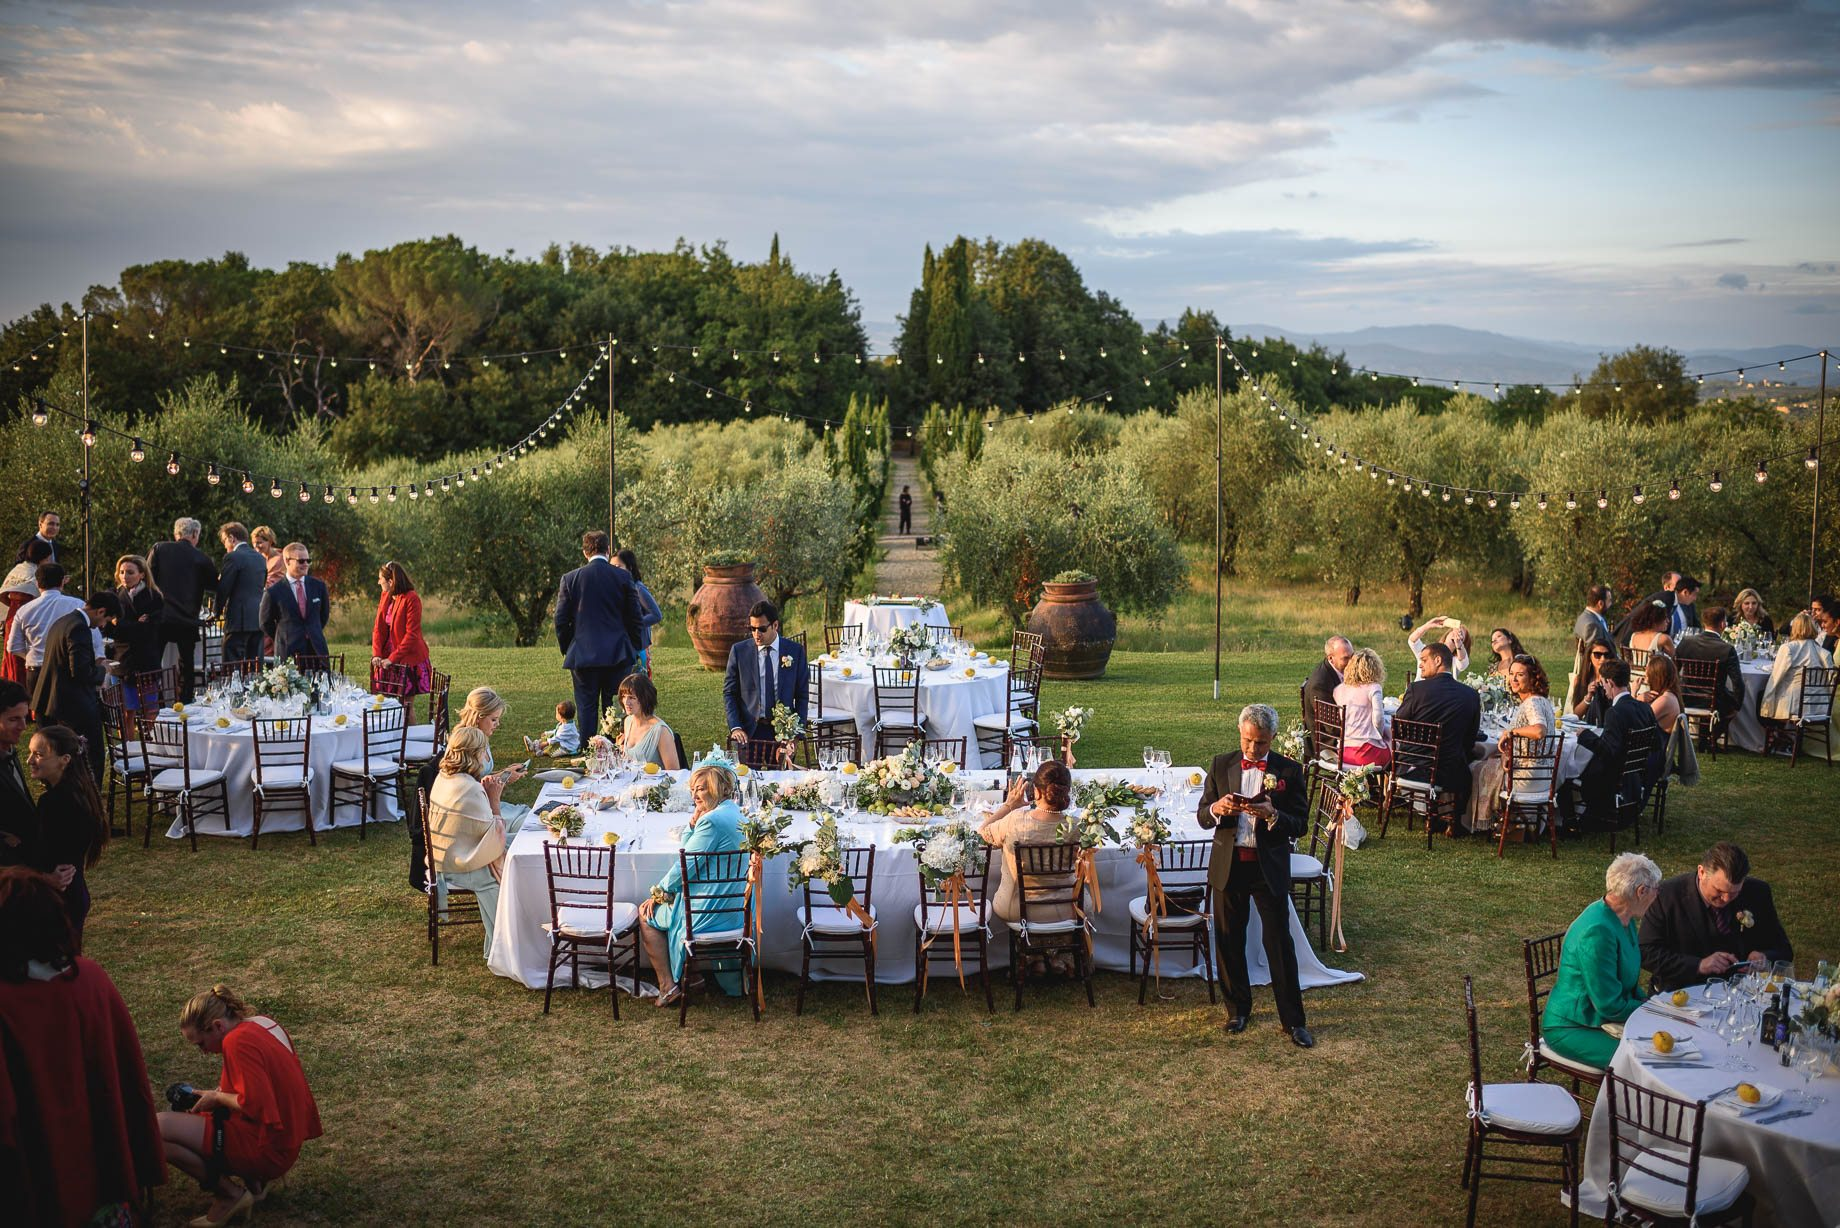 Tuscany wedding photography - Roisin and Moubin - Guy Collier Photography (164 of 251)